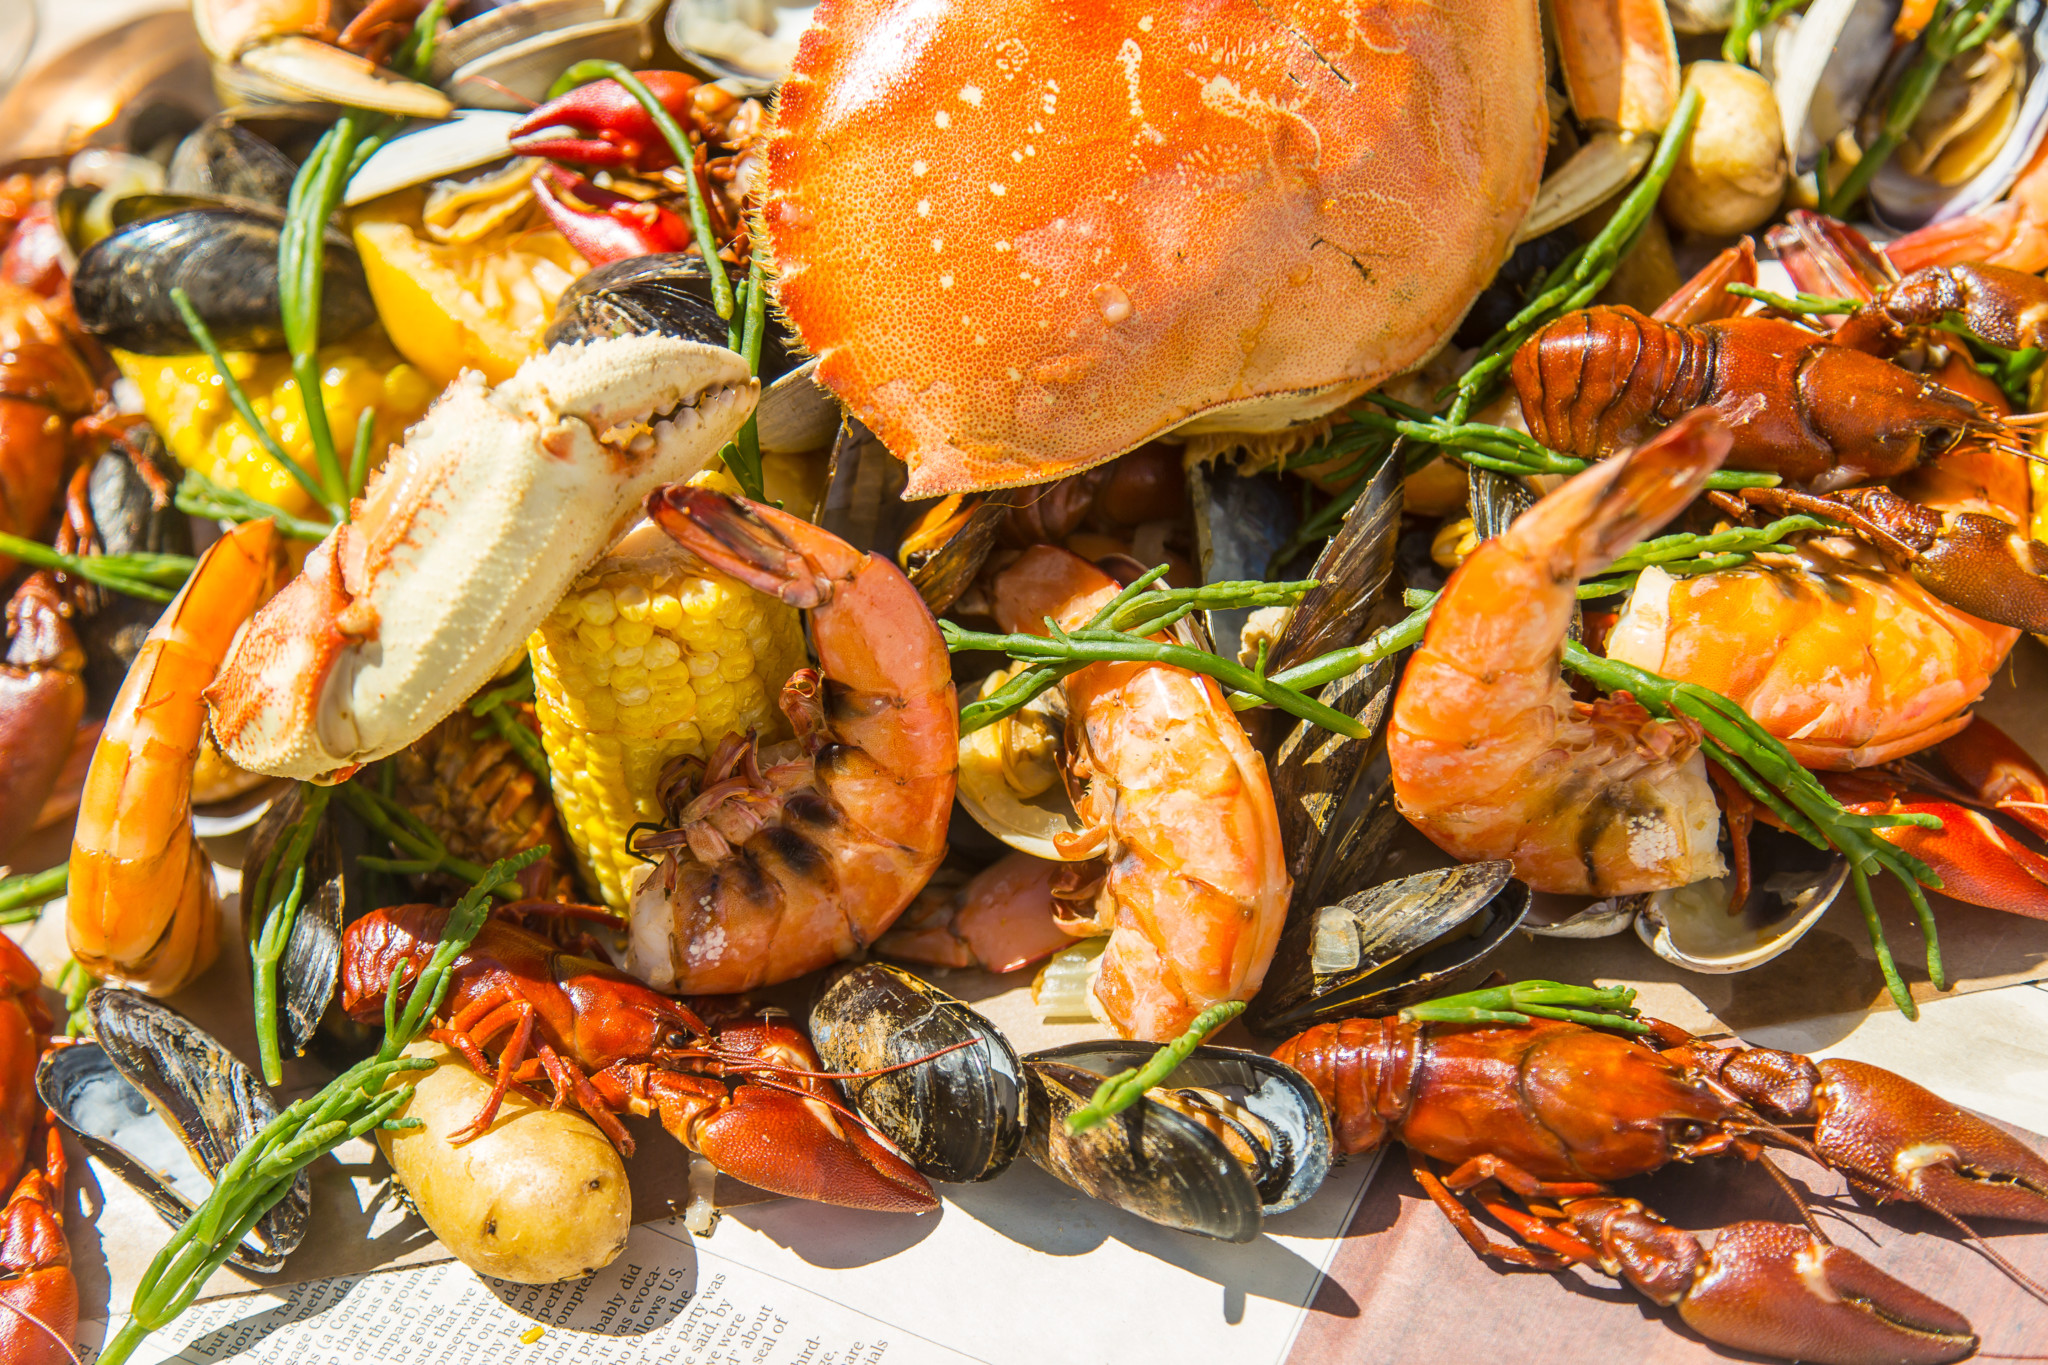 BOILING POINT: BOULEVARD KITCHEN & OYSTER BAR ANNOUNCES SUMMER 2016 DATES FOR SUNDAY SEAFOOD BOIL SERIES